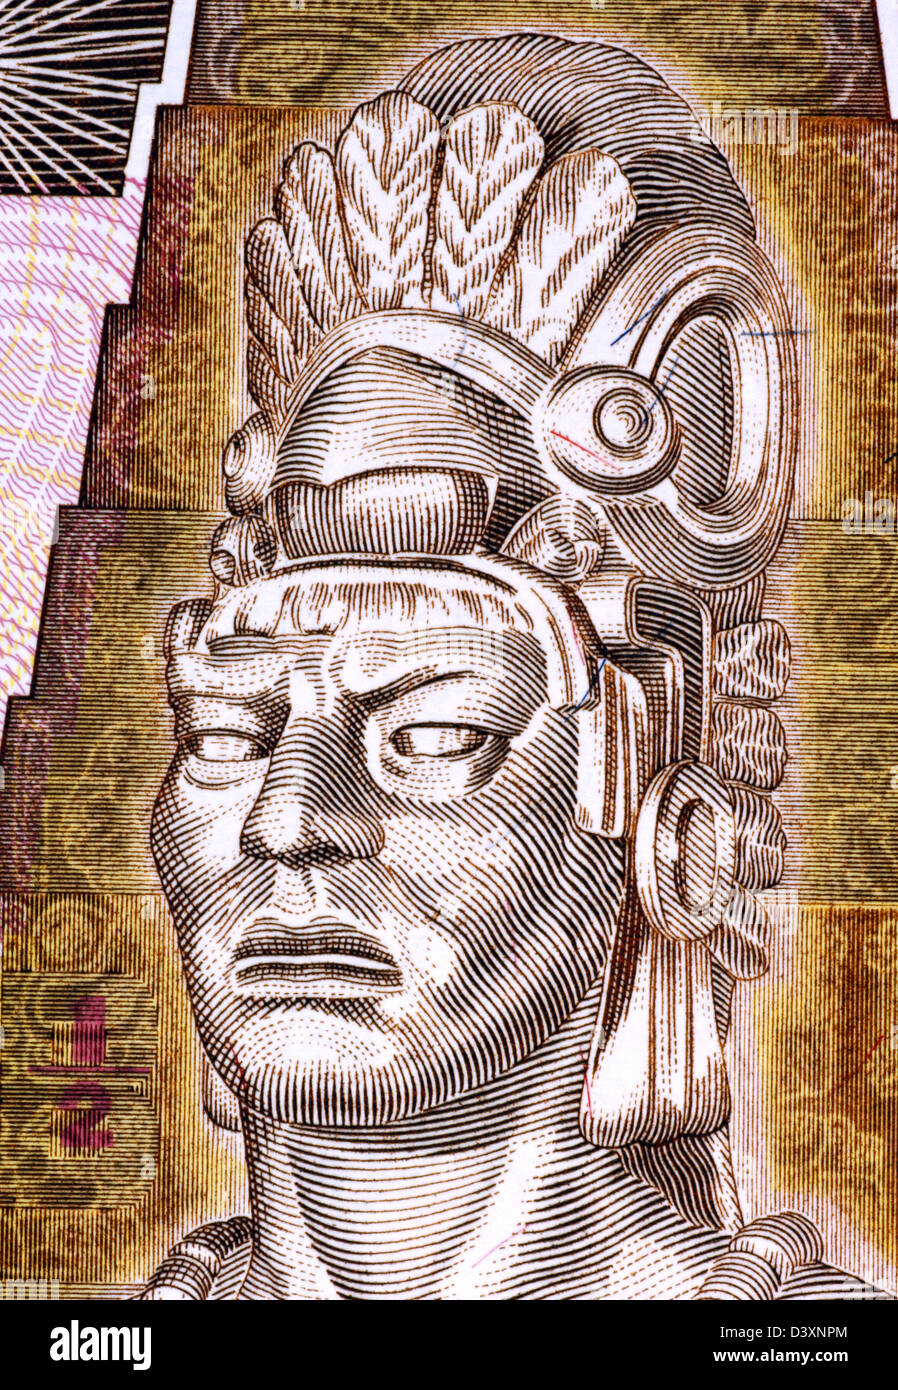 Tecun Uman (1500-1524) on Half Quetzal 1998 Banknote from Guatemala. Last ruler and king of the K'iche' - Stock Image